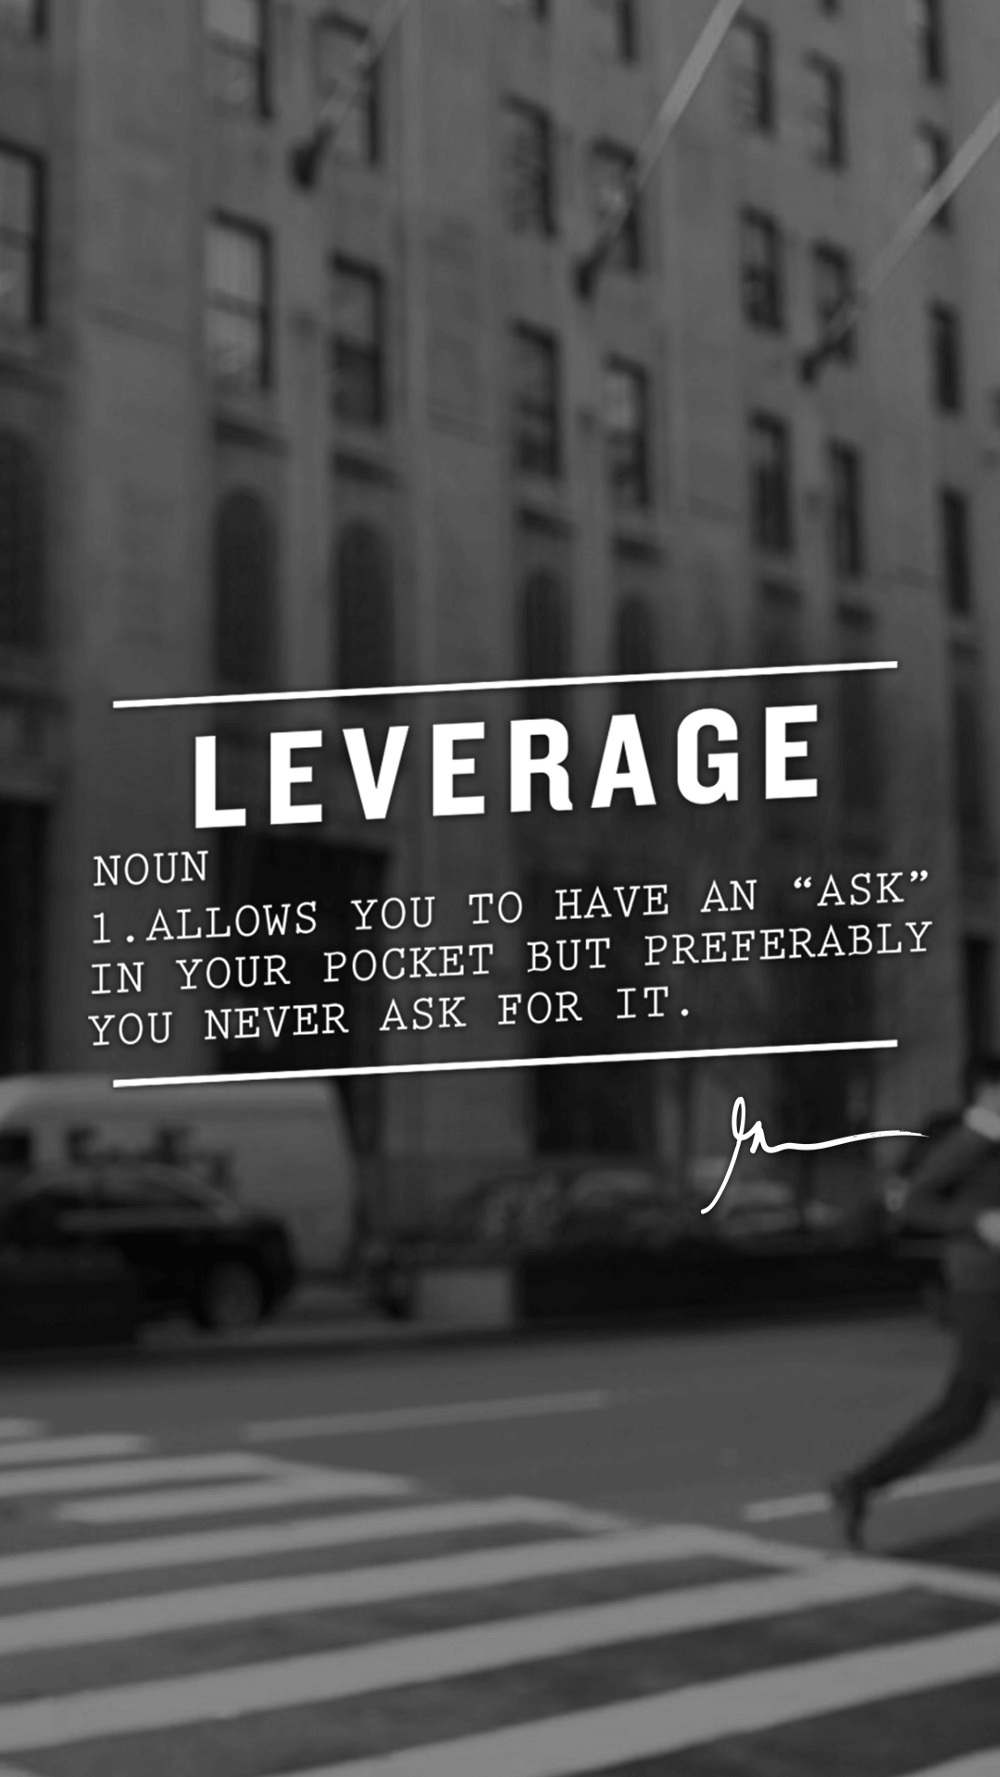 Leverage Allows You To Have An Ask In Your Pocket But Preferably You Never Ask For It